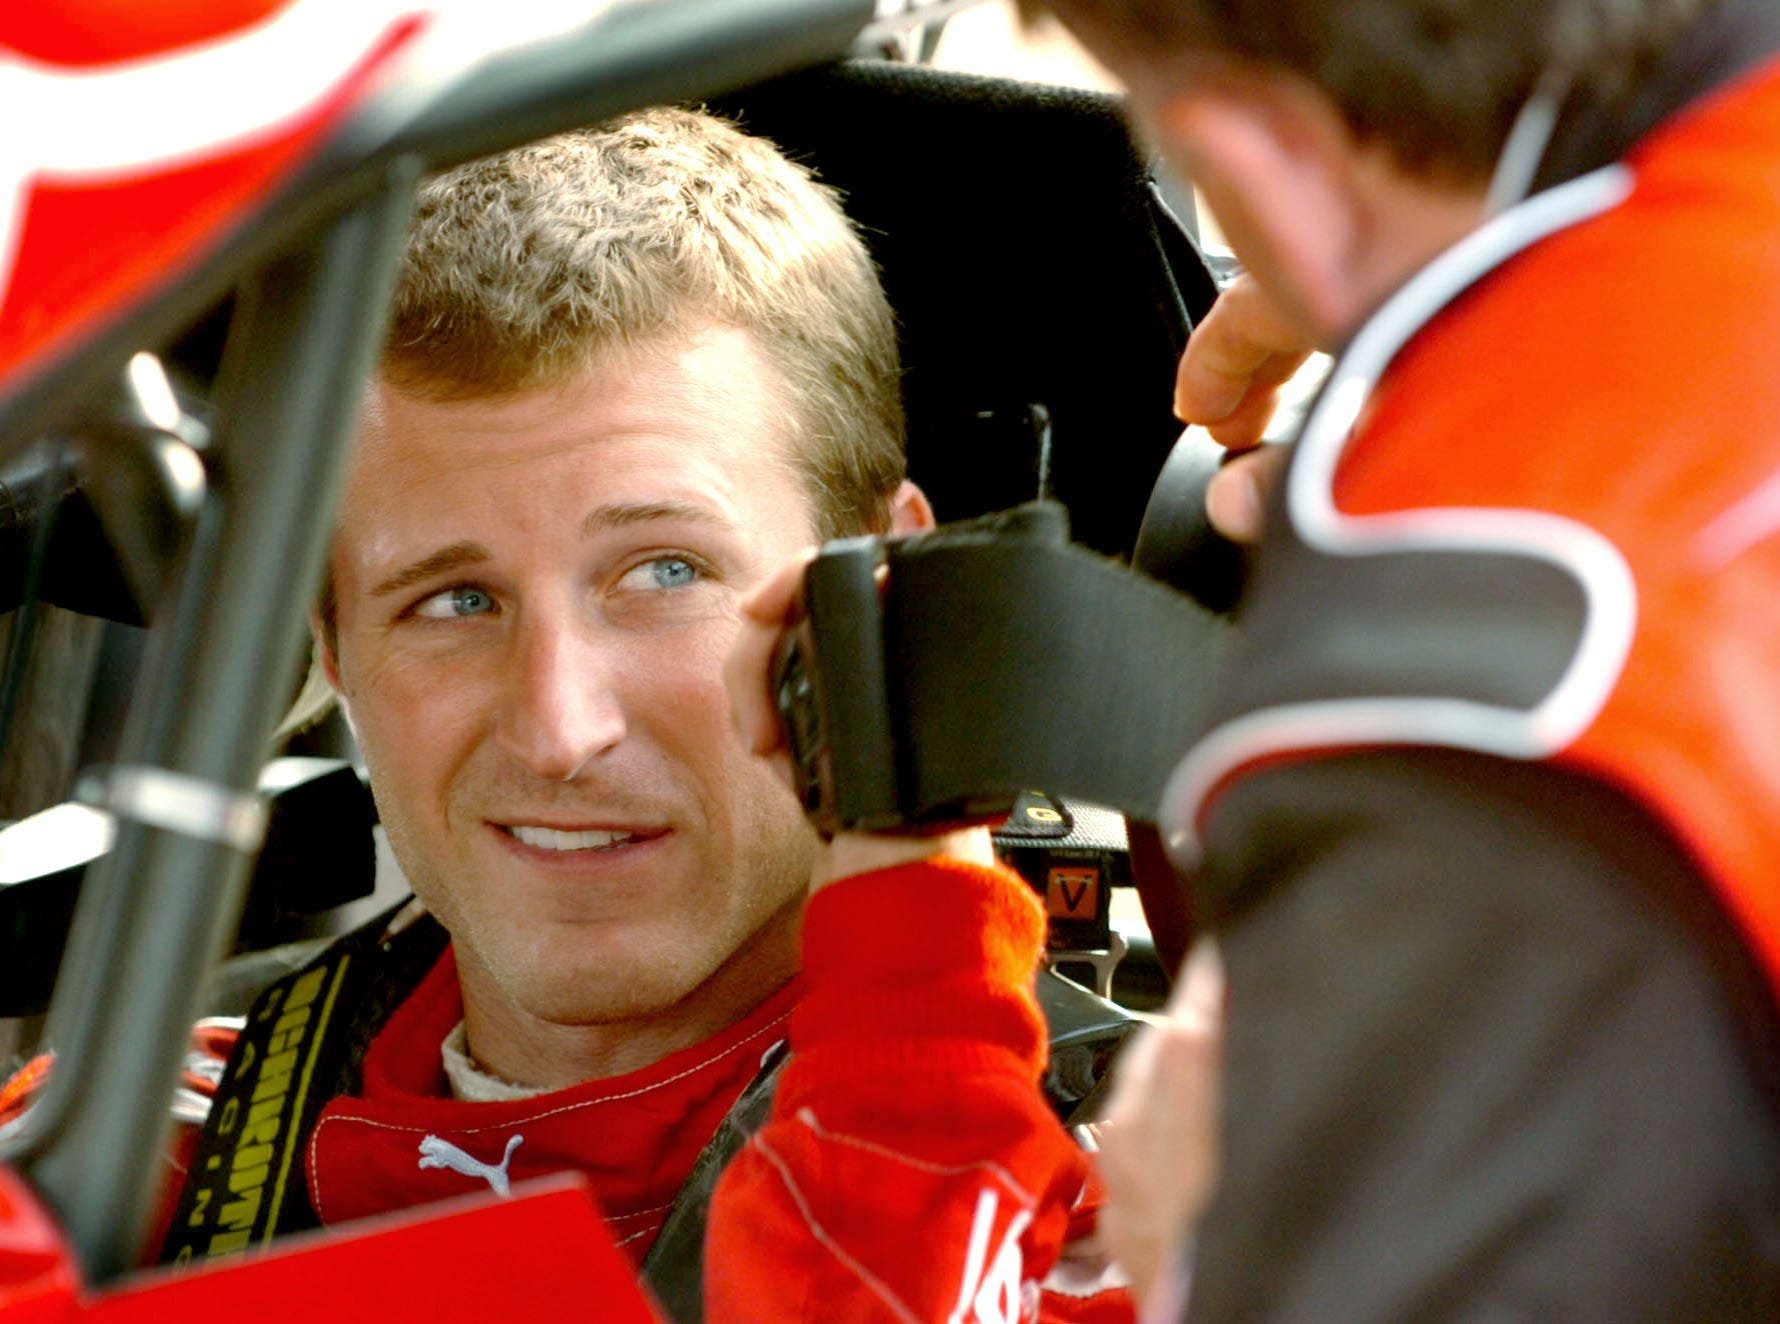 Kasey Kahne and his Kasey Kahne Foundation brought two more NASCAR drivers to Williams Grove Thursday night, Kyle Busch and Tony Stewart in 2010.